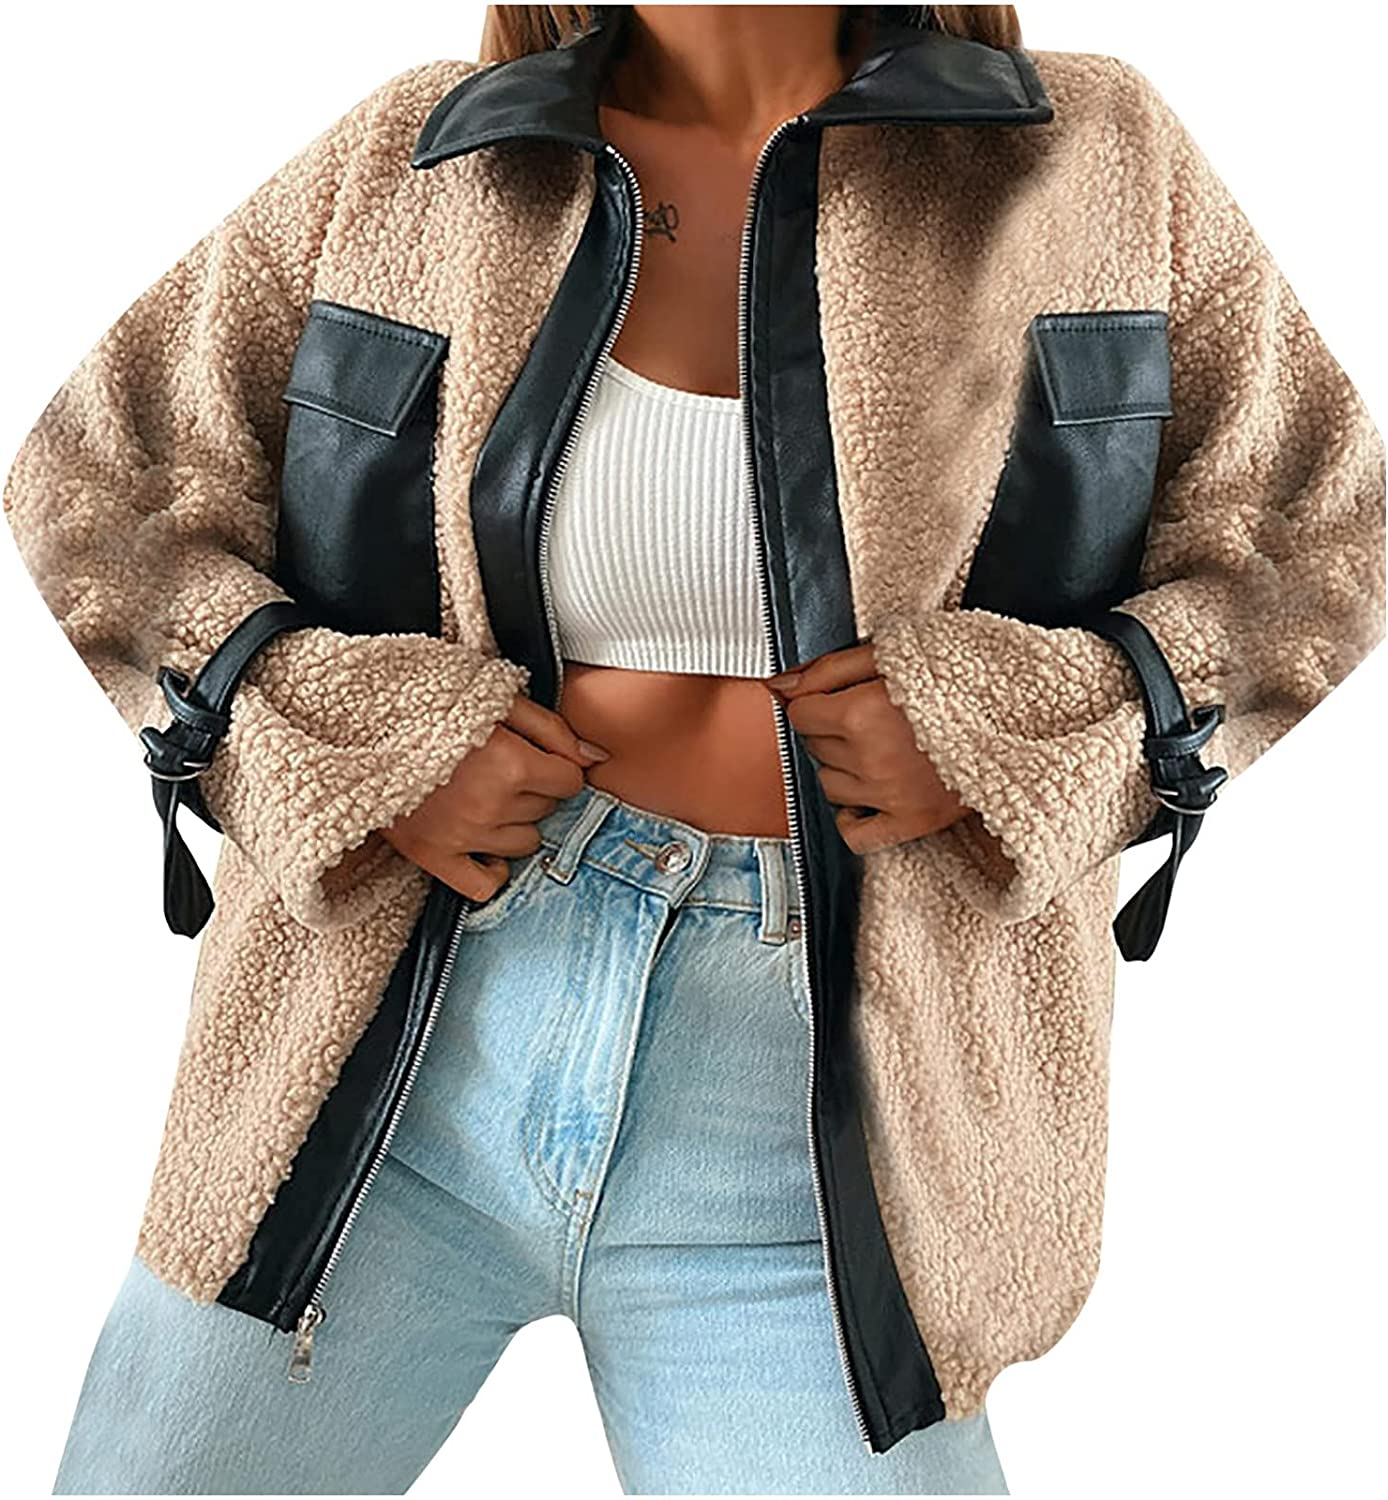 Women's Leather Patchwork Plush Warm Jacket Coat Fashion Long Sleeve Shirt Blouses Casual Plus Size Tops with Pocket